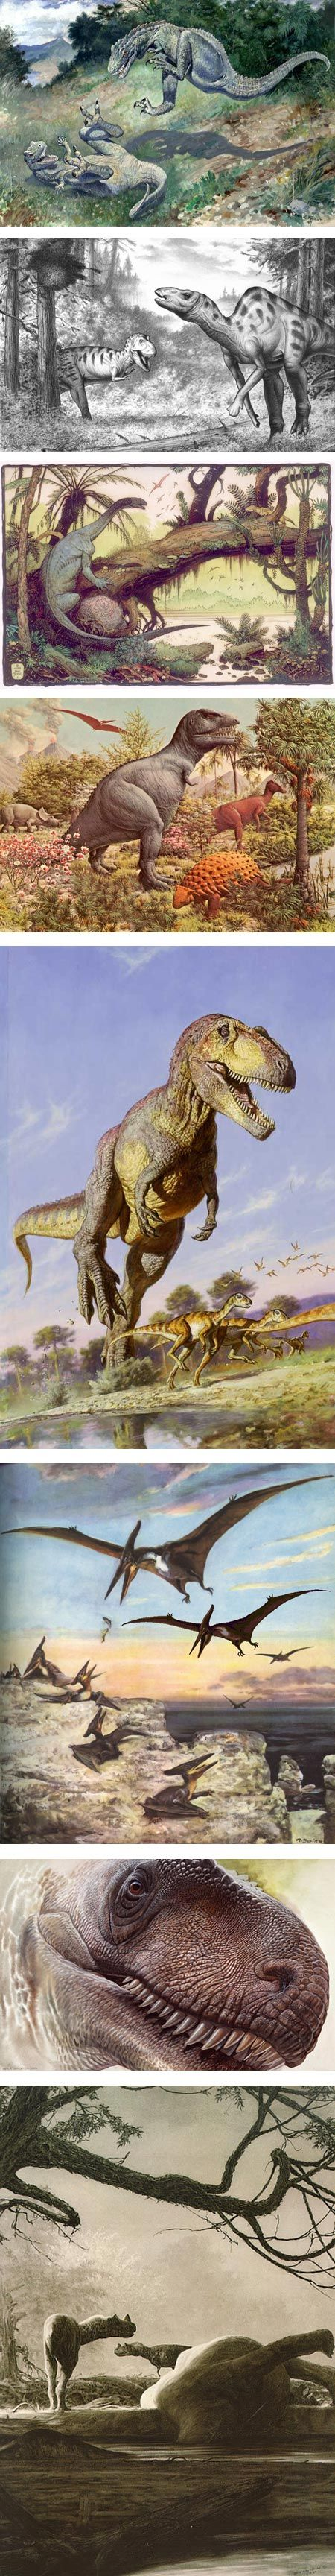 Picturing Dinosaurs on Tor com  Charles R  Knight  Robert F  Walters  William Stout  Rudolph Zallinger  James Gurney  Zden  k Burian  Peter Schouten   Douglas Henderson